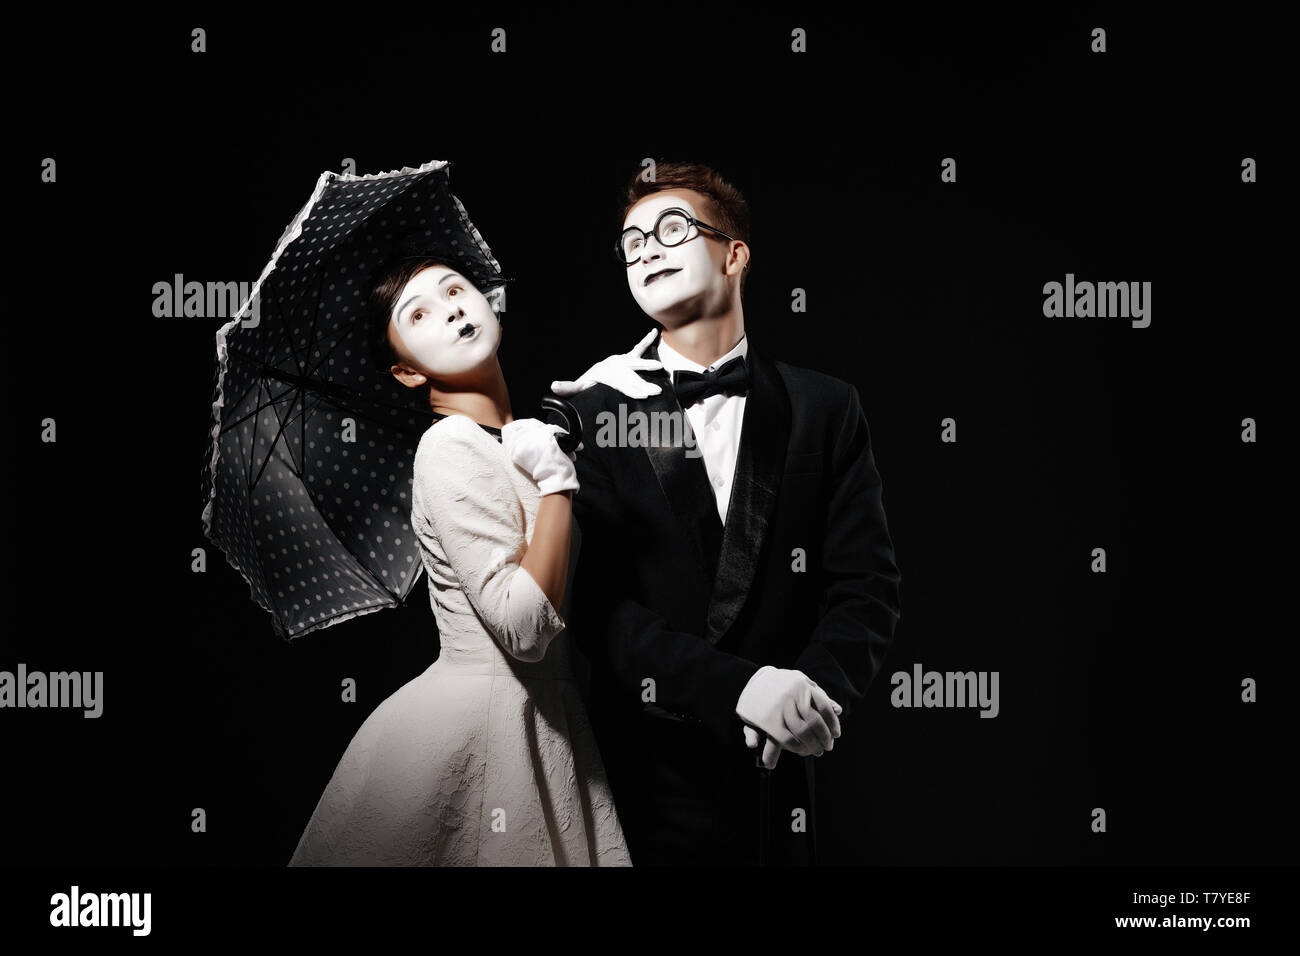 portrait of couple mime with umbrella on black background. man in tuxedo and glasses and woman in white dress. space for text - Stock Image